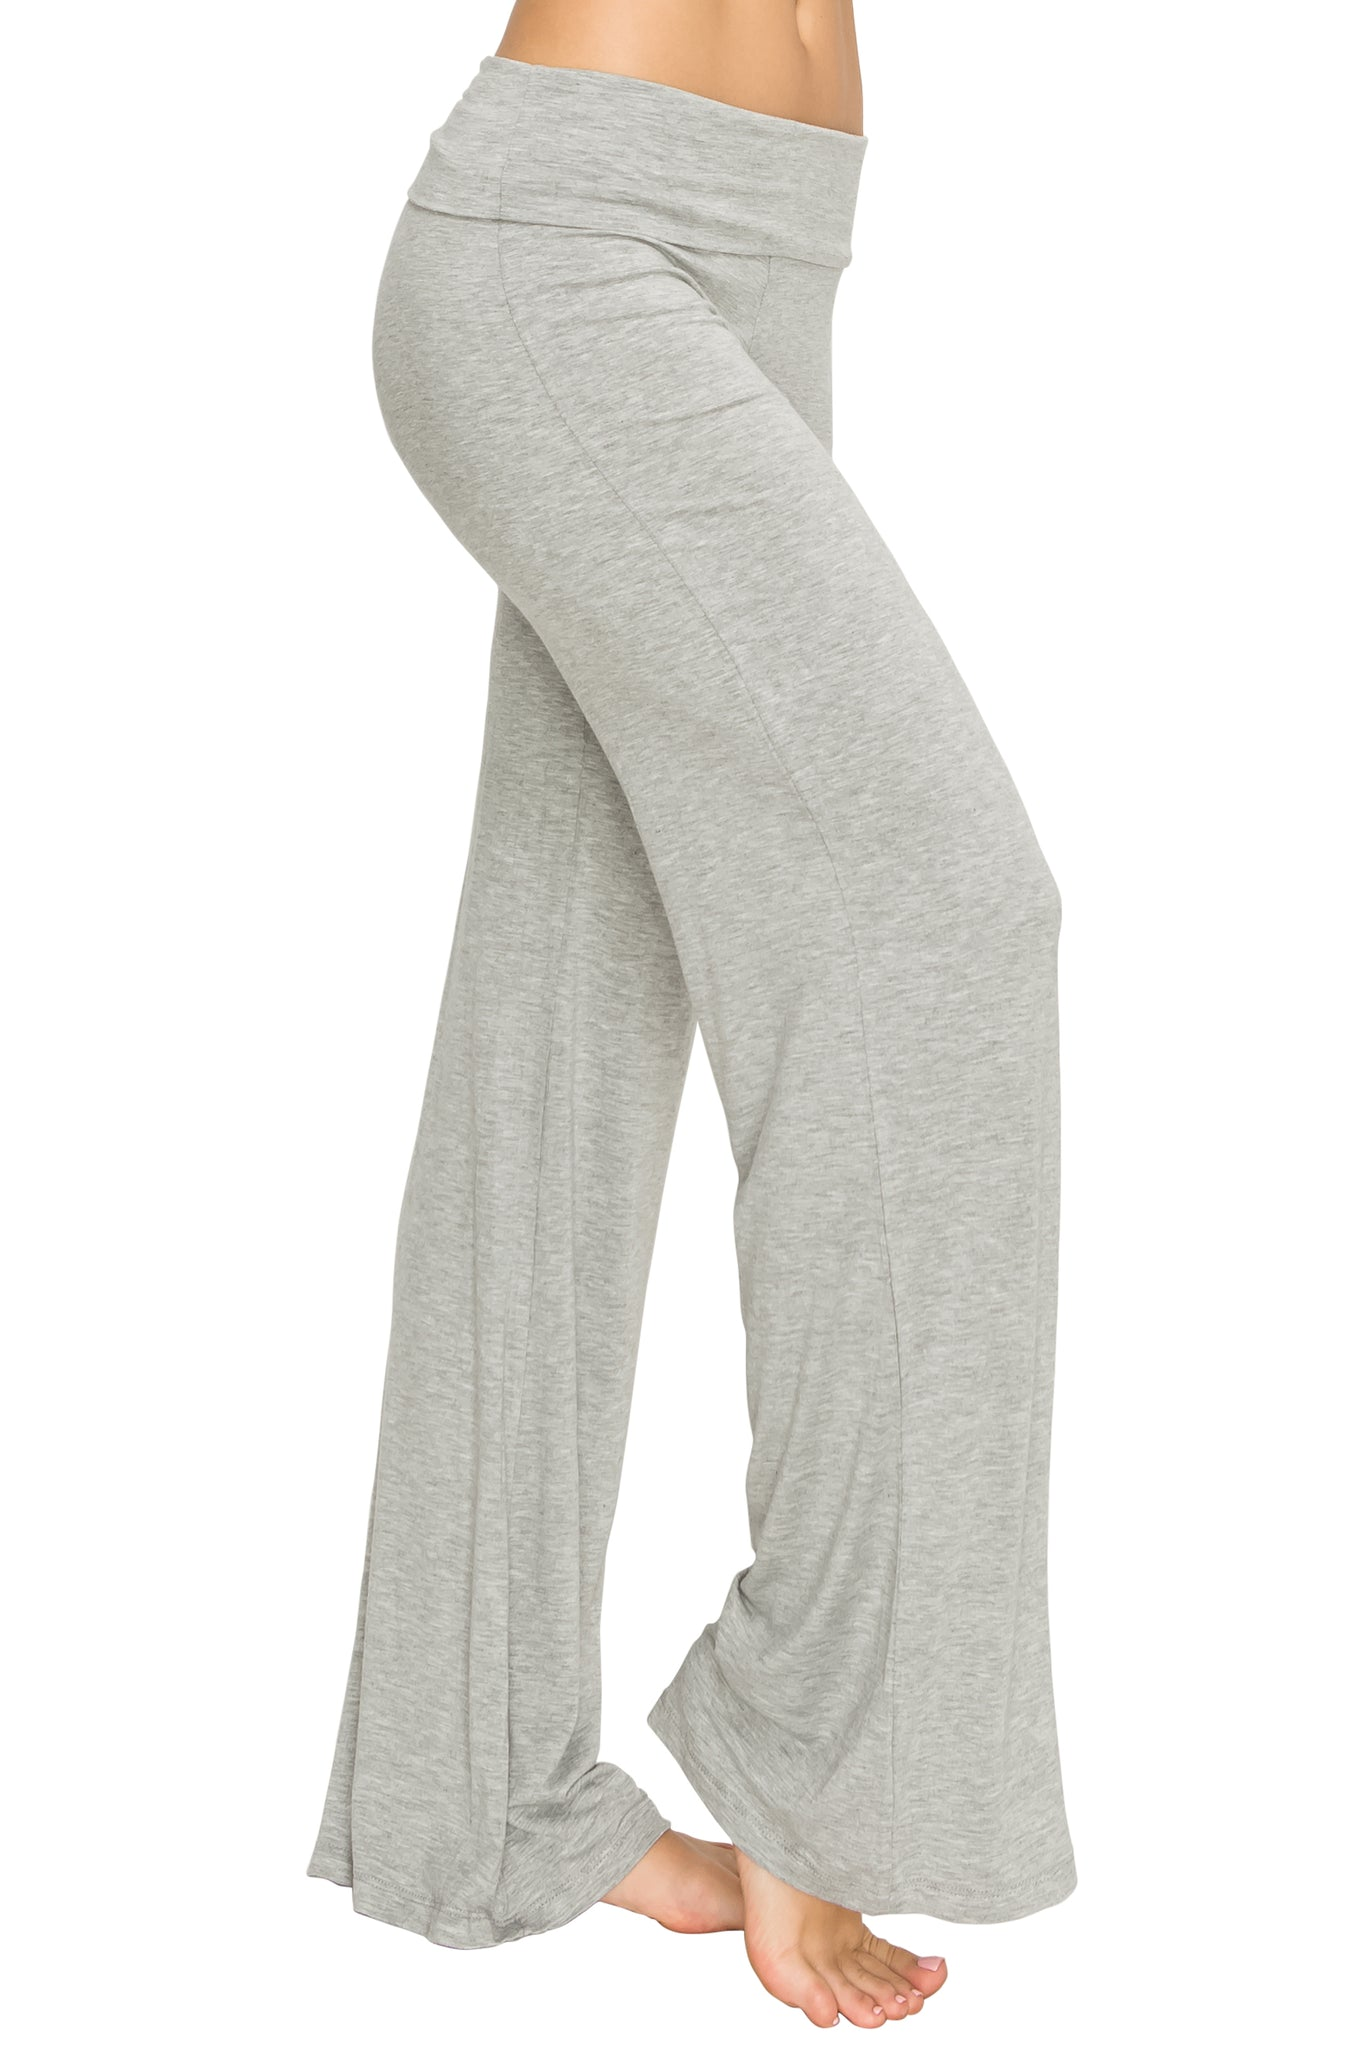 Gray Foldover Yoga Pants - Poplooks